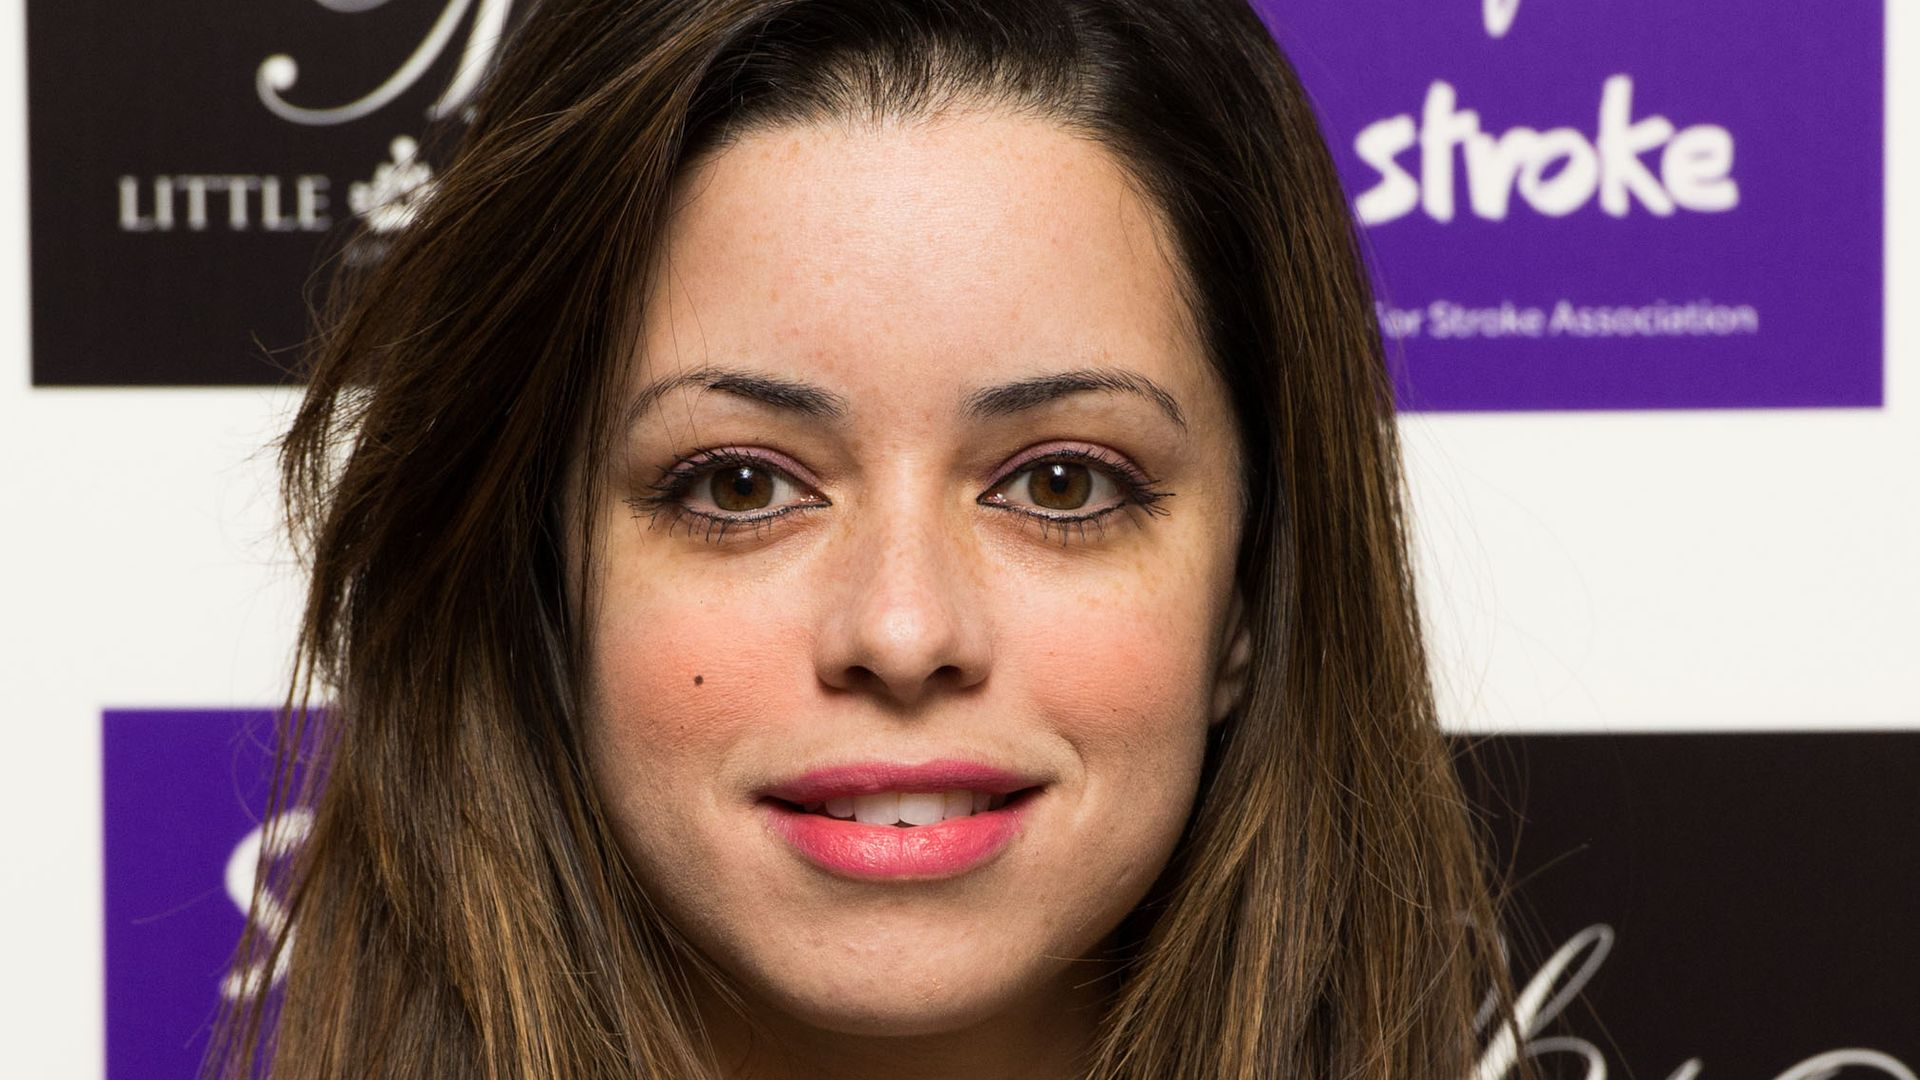 Tina Barrett Background